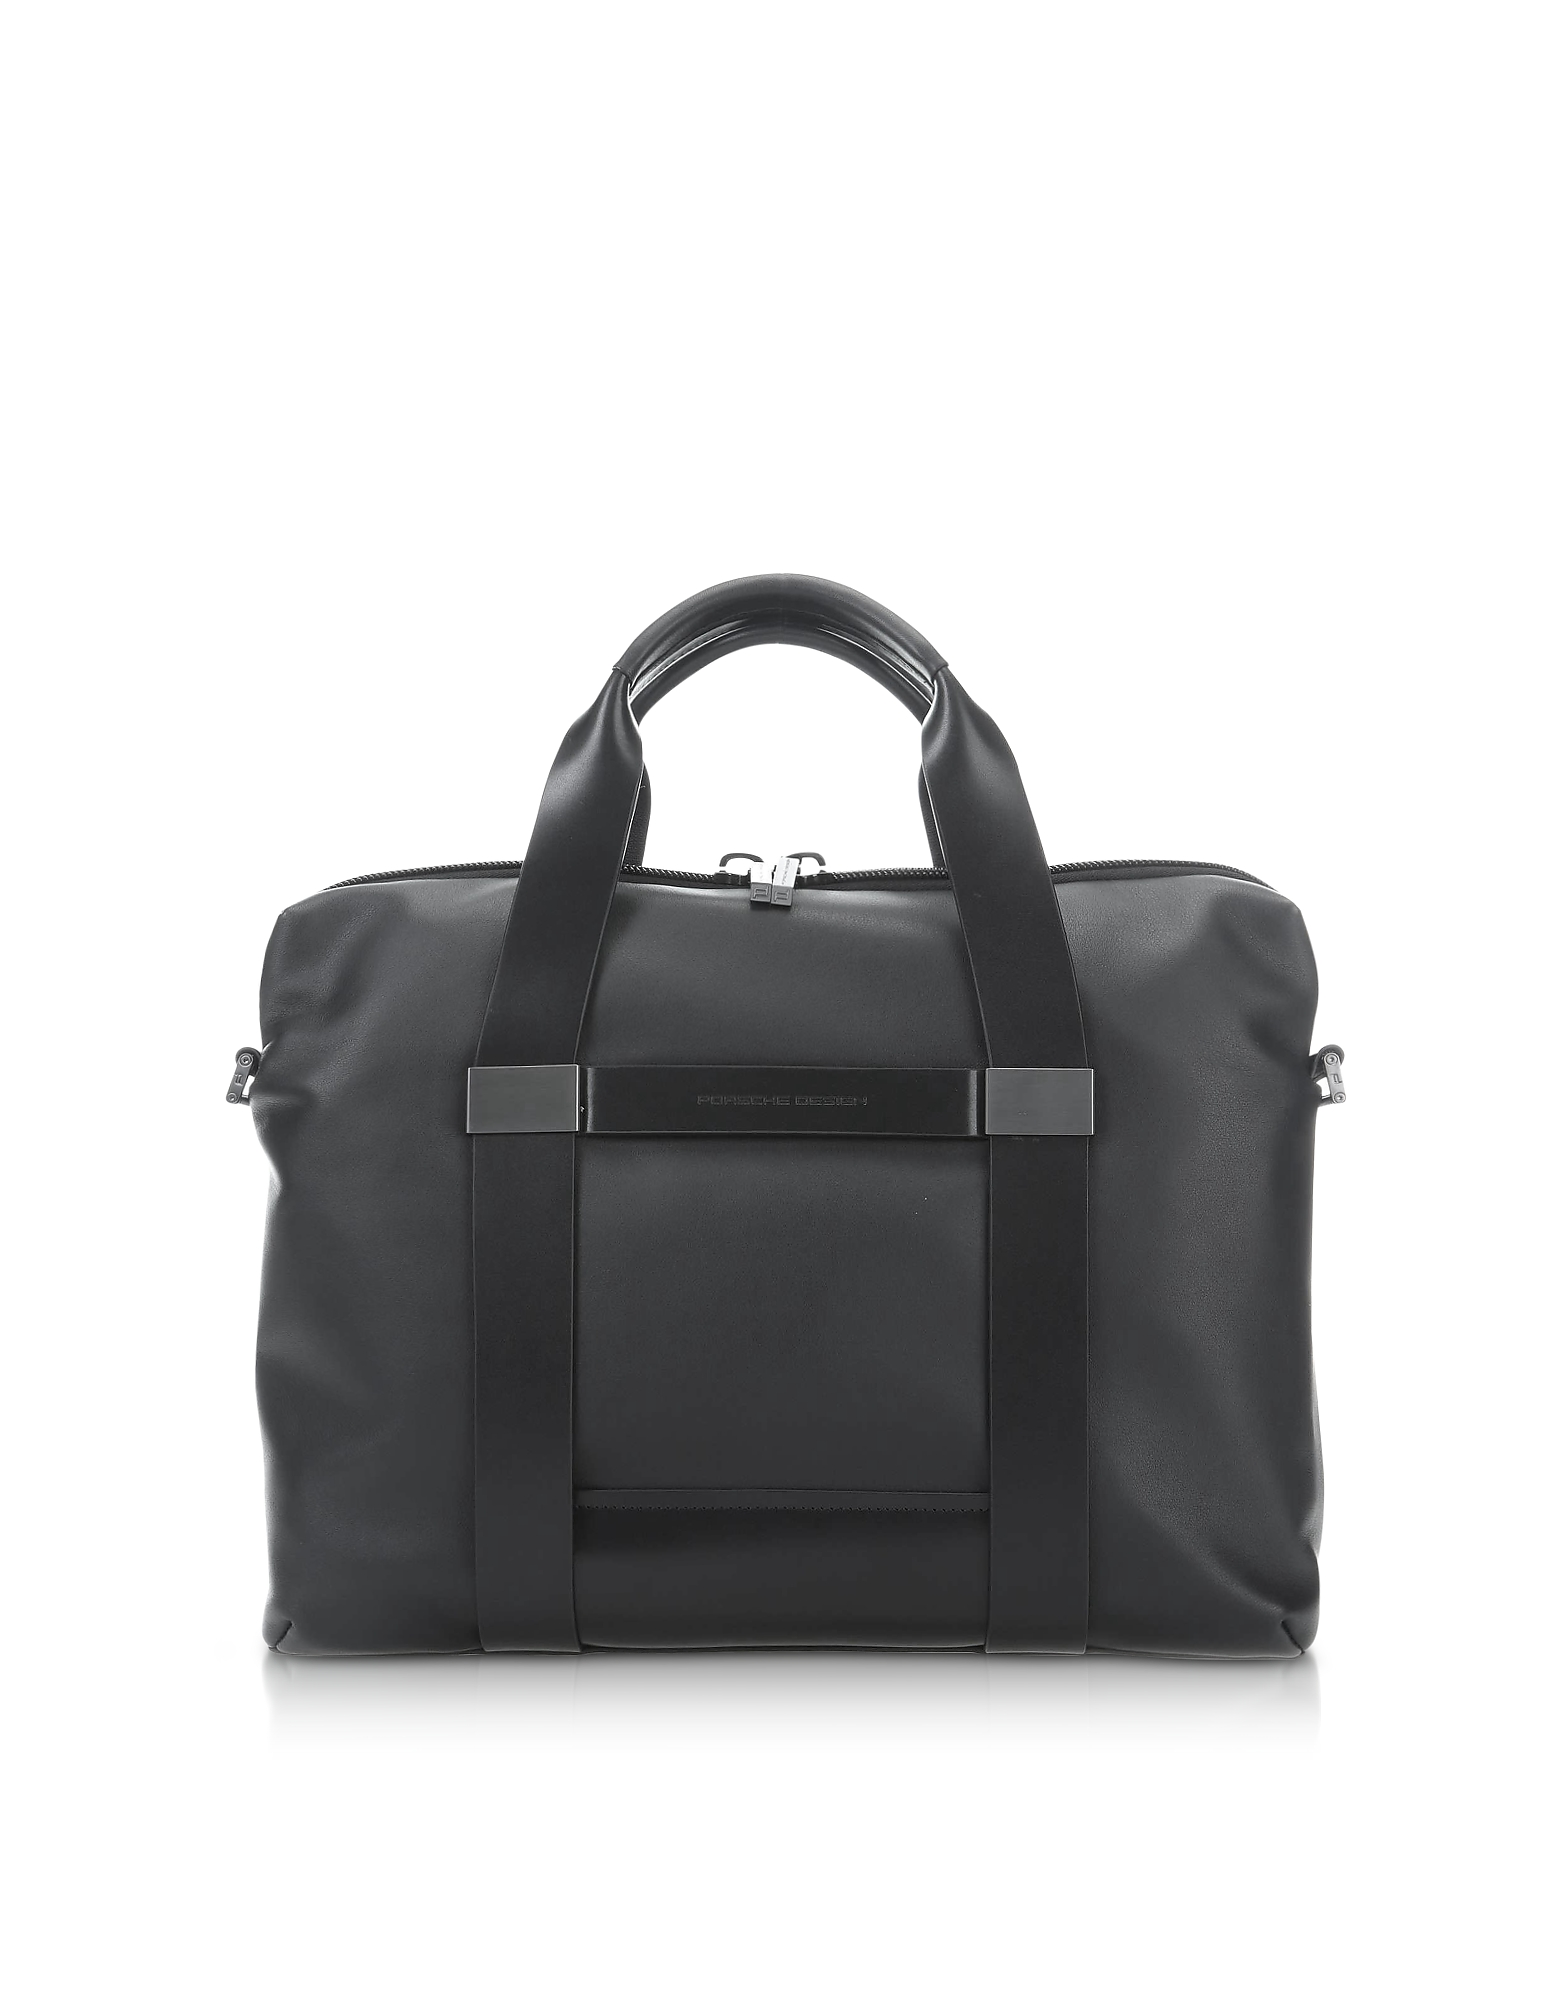 Shyrt 2.0 Black Leather SHZ BriefBag